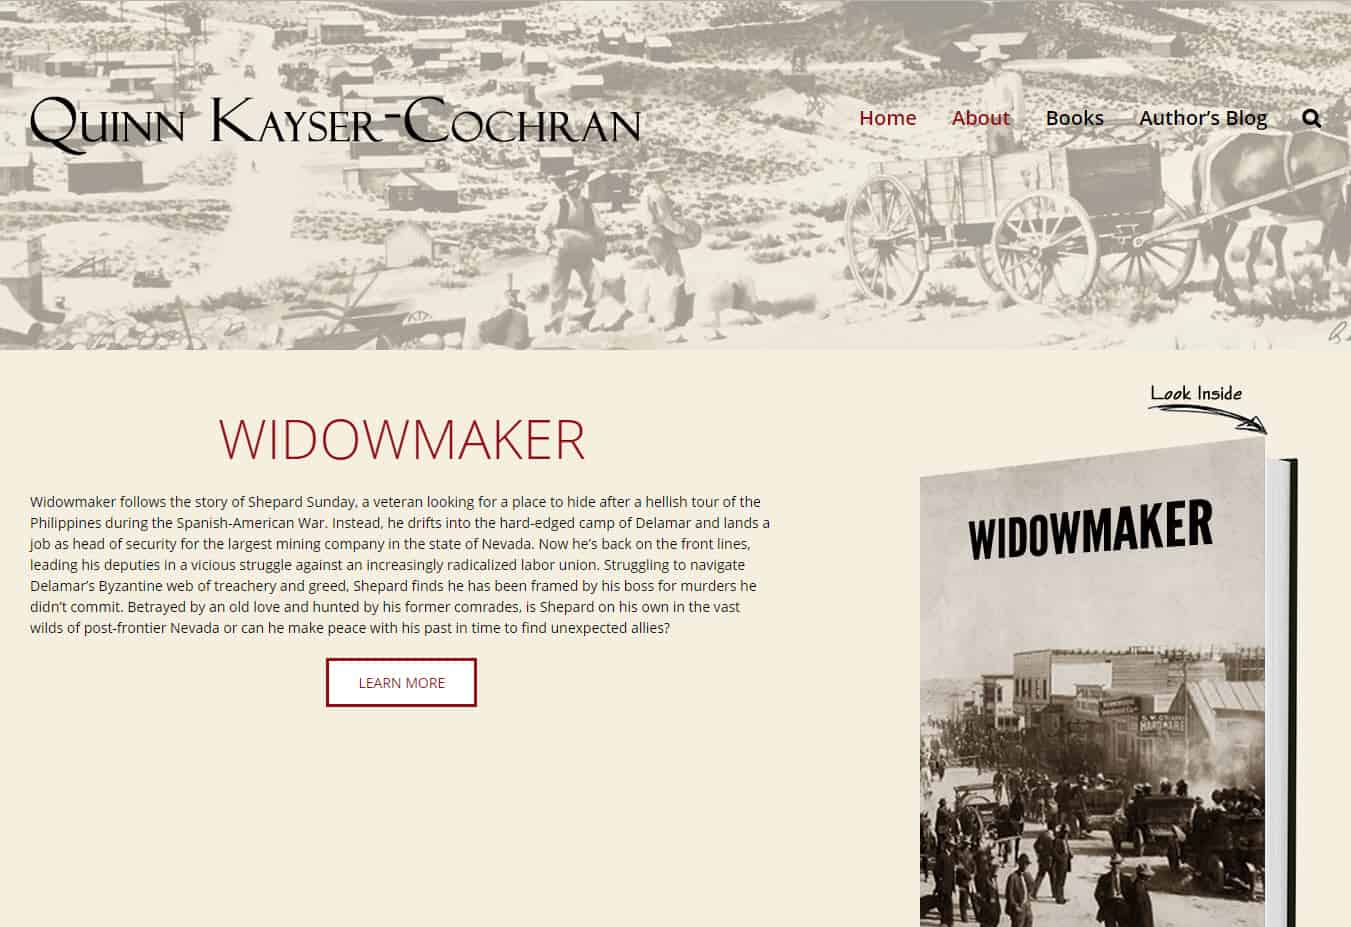 Quinn Kayser-Cochran. Author's site designed by CoBa Web Design